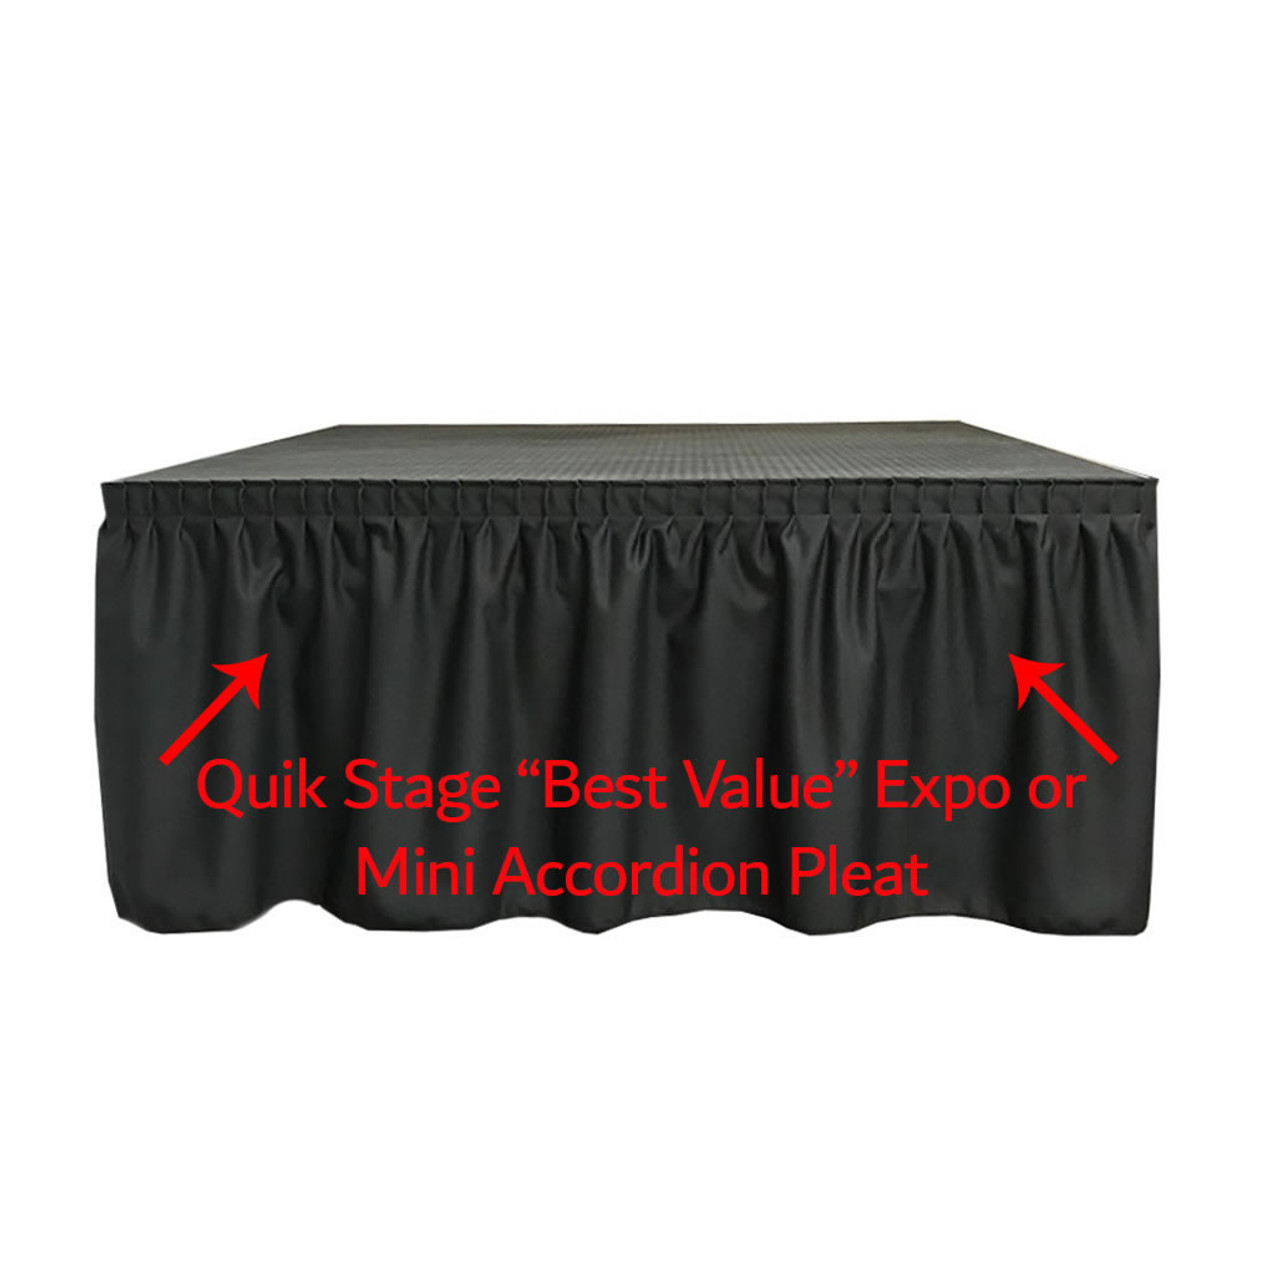 """Quik Stage 12' x 16' x 8"""" High Portable Stage Package with Black Polyvinyl Non-Skid Surface. Additional Surfaces and Heights Available - Best Value Expo Pleat Skirting"""